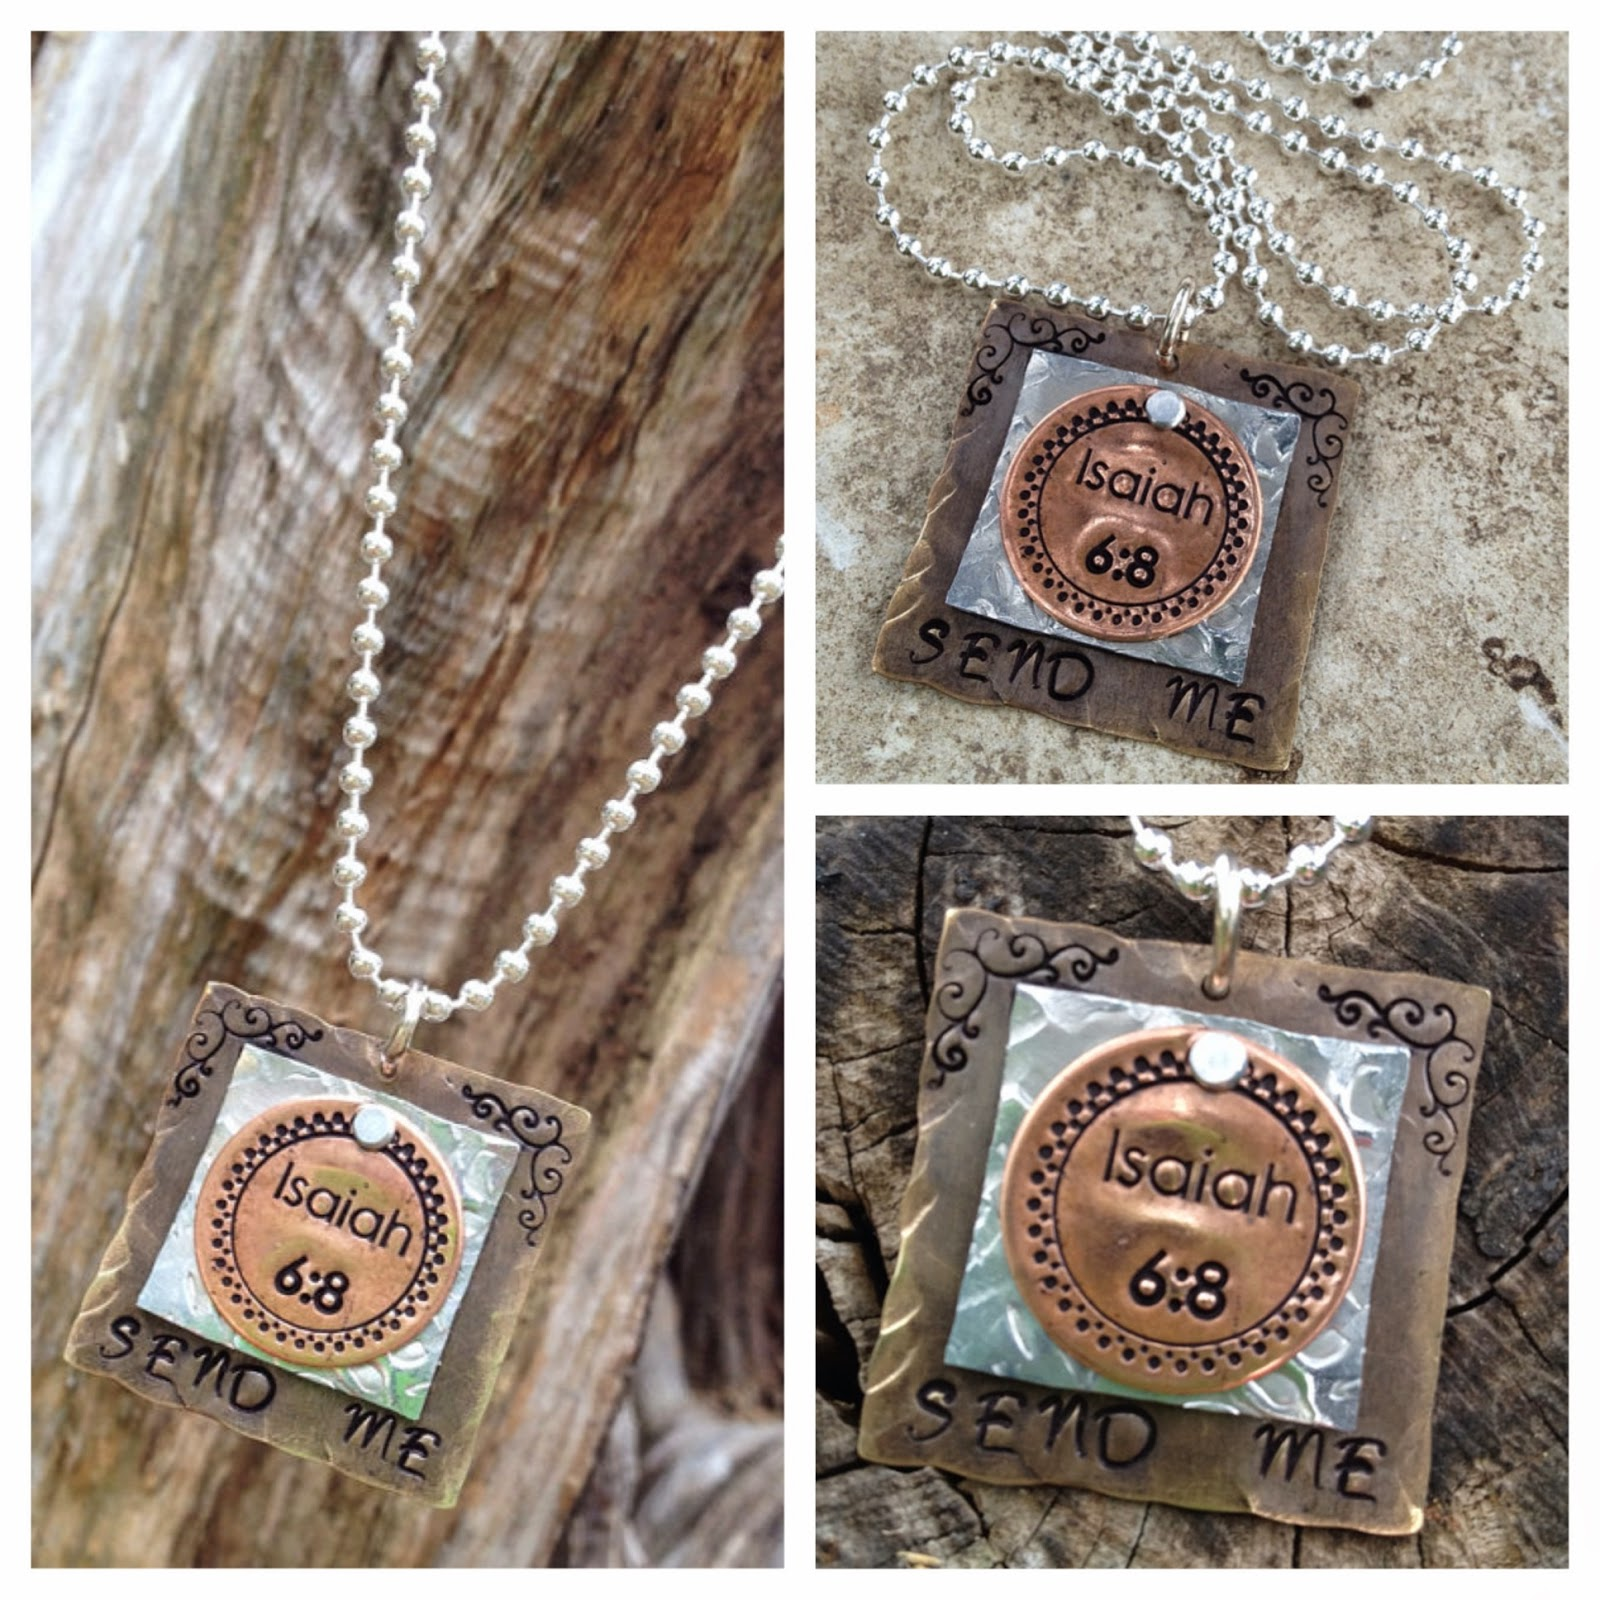 https://www.etsy.com/listing/185221370/send-me-isaiah-68-hand-stamped-necklace?ref=shop_home_active_3